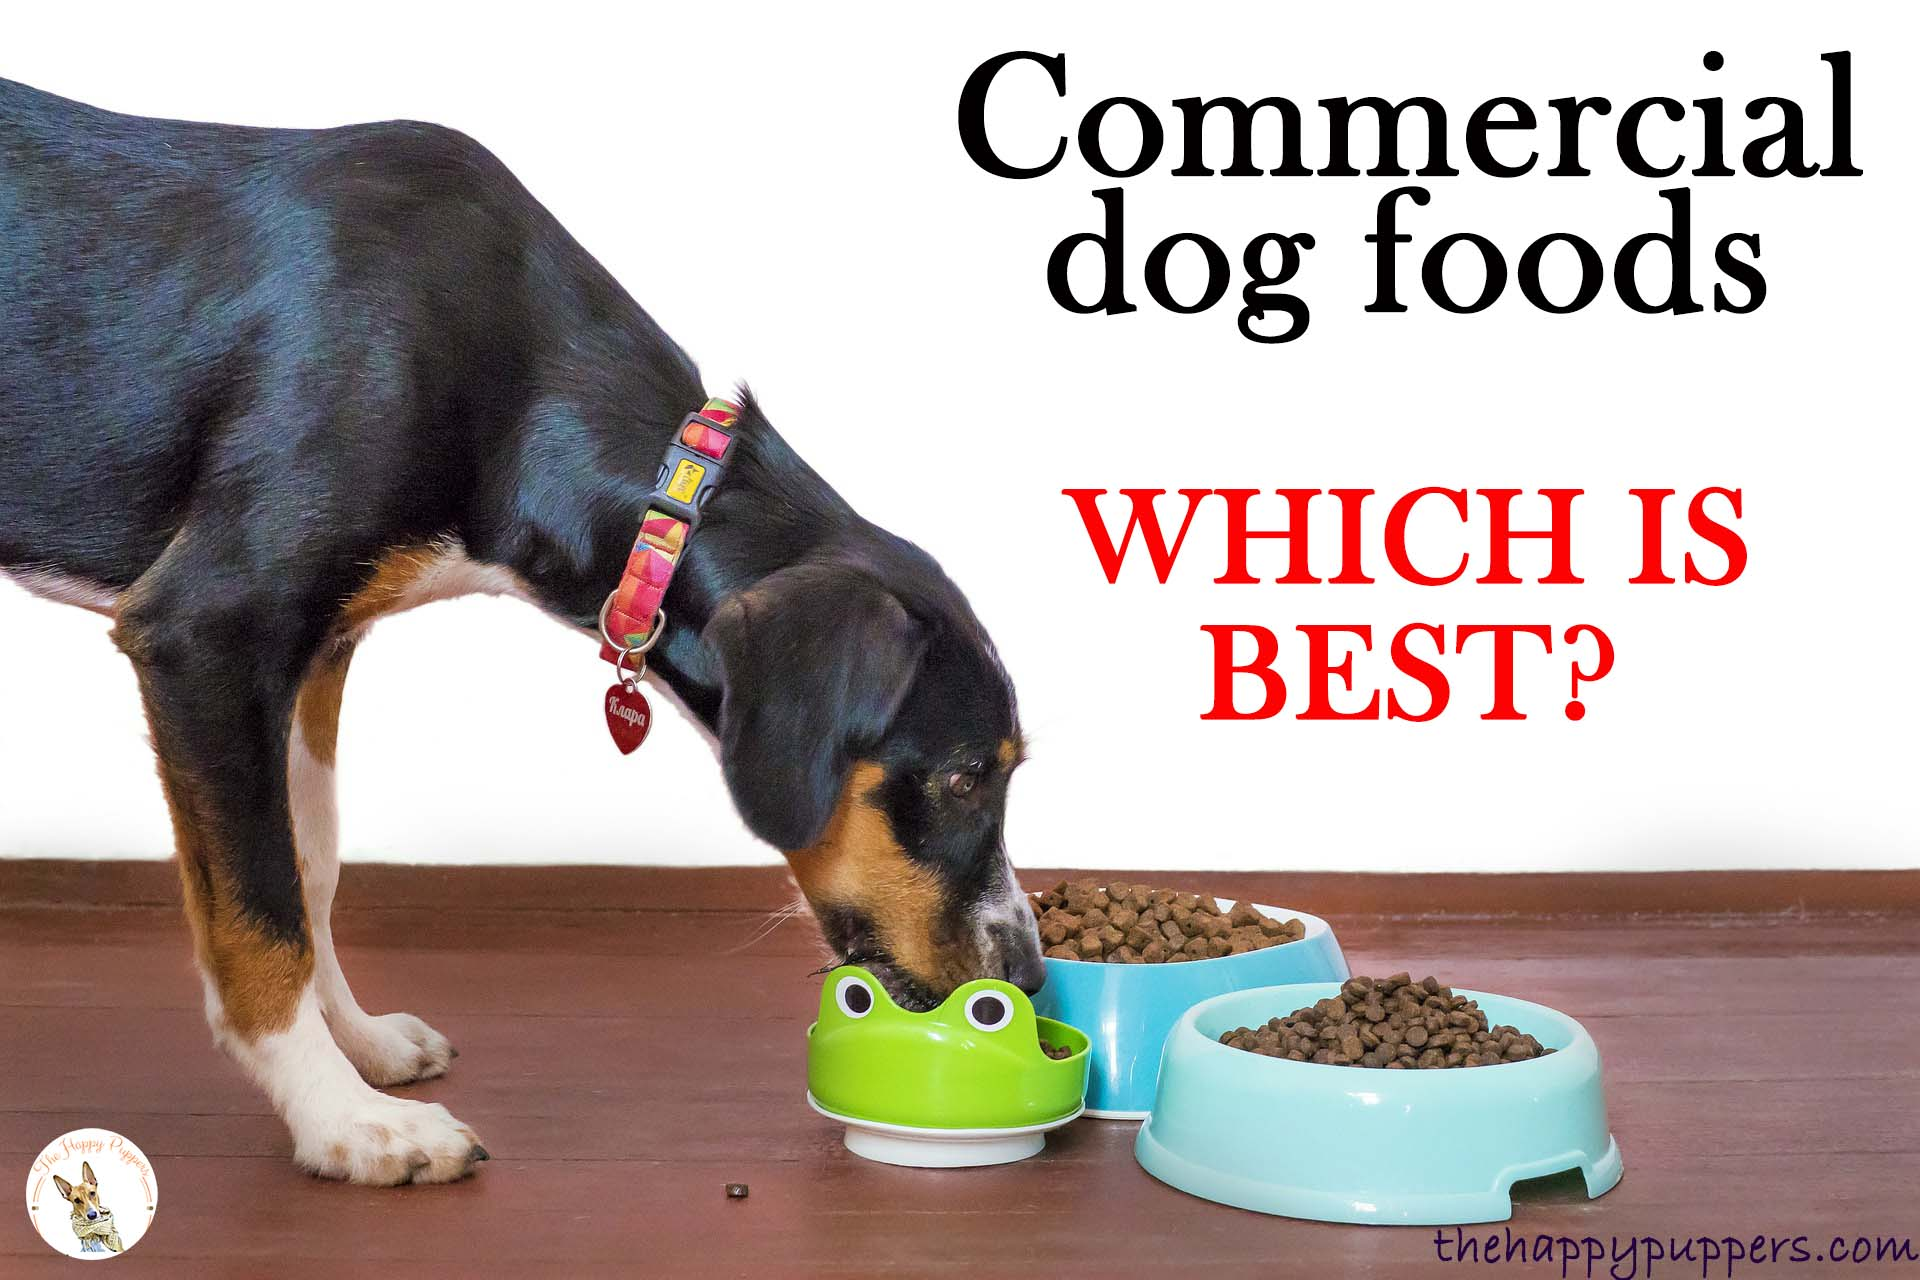 Commercial dog food: Which is the best option for your pup?